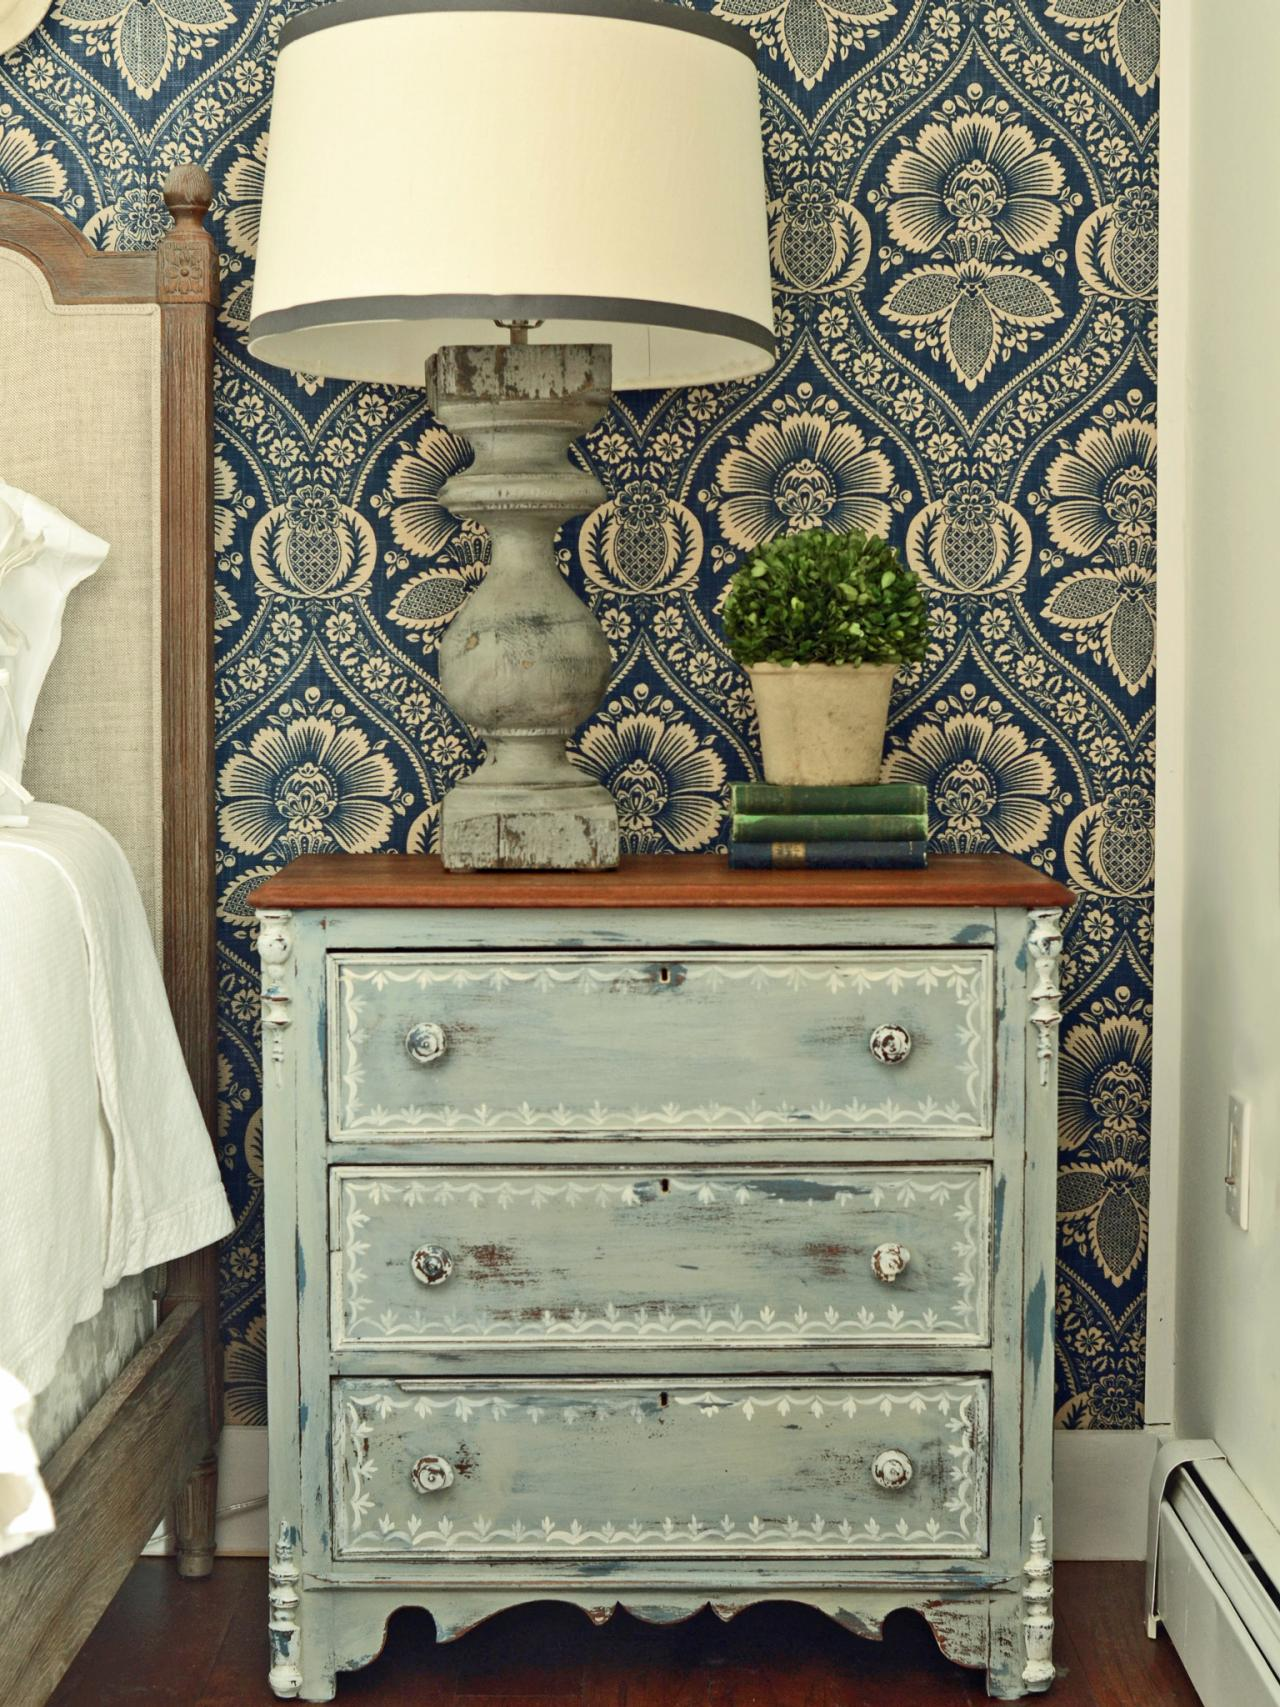 Give plain nightstands rustic charm with milk paint hgtv for Painting designs on wood furniture